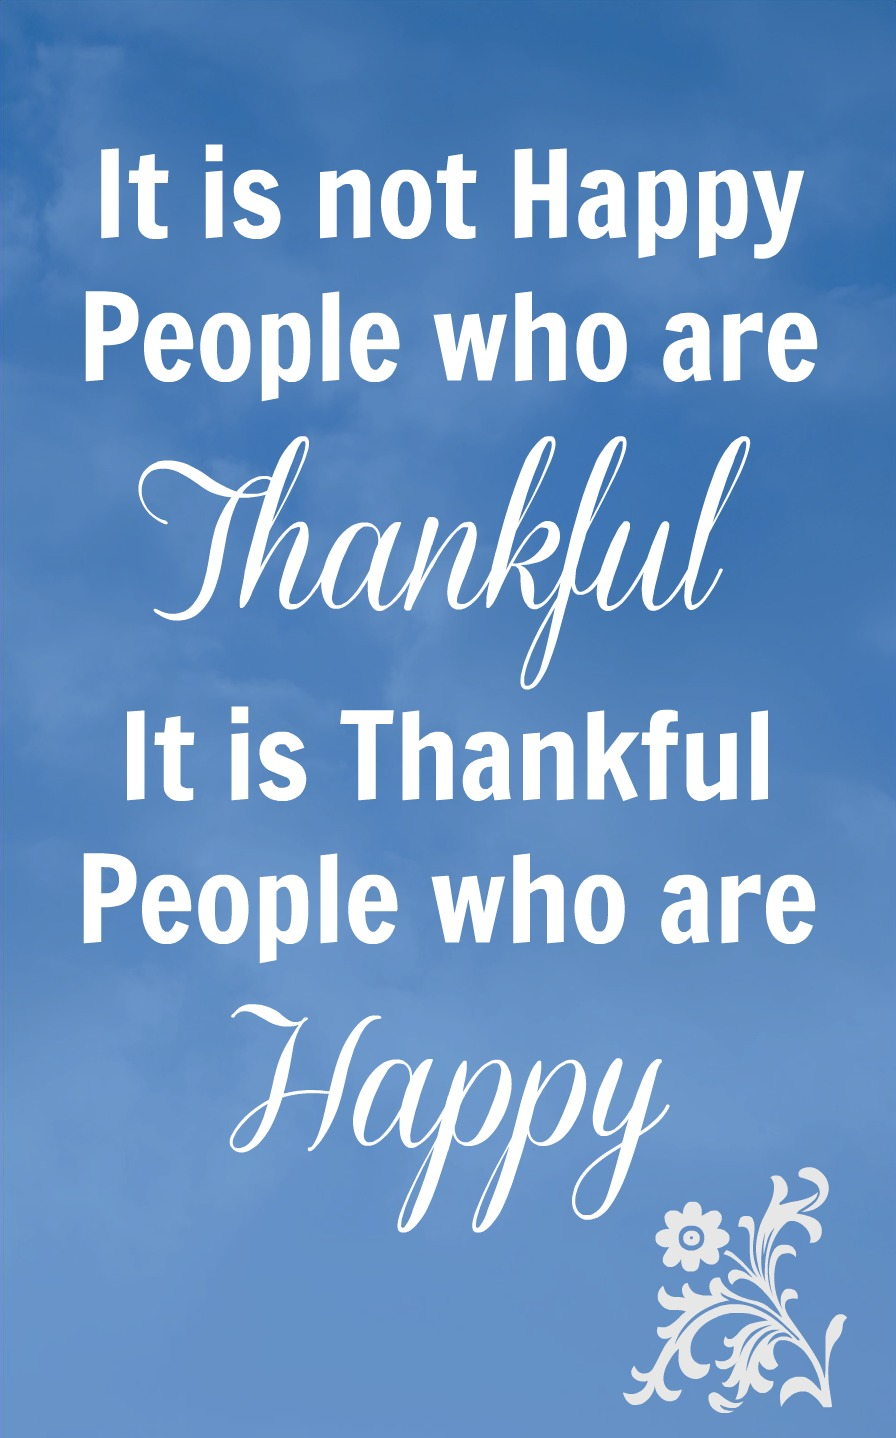 Thankful People who Are Happy 9-17-13